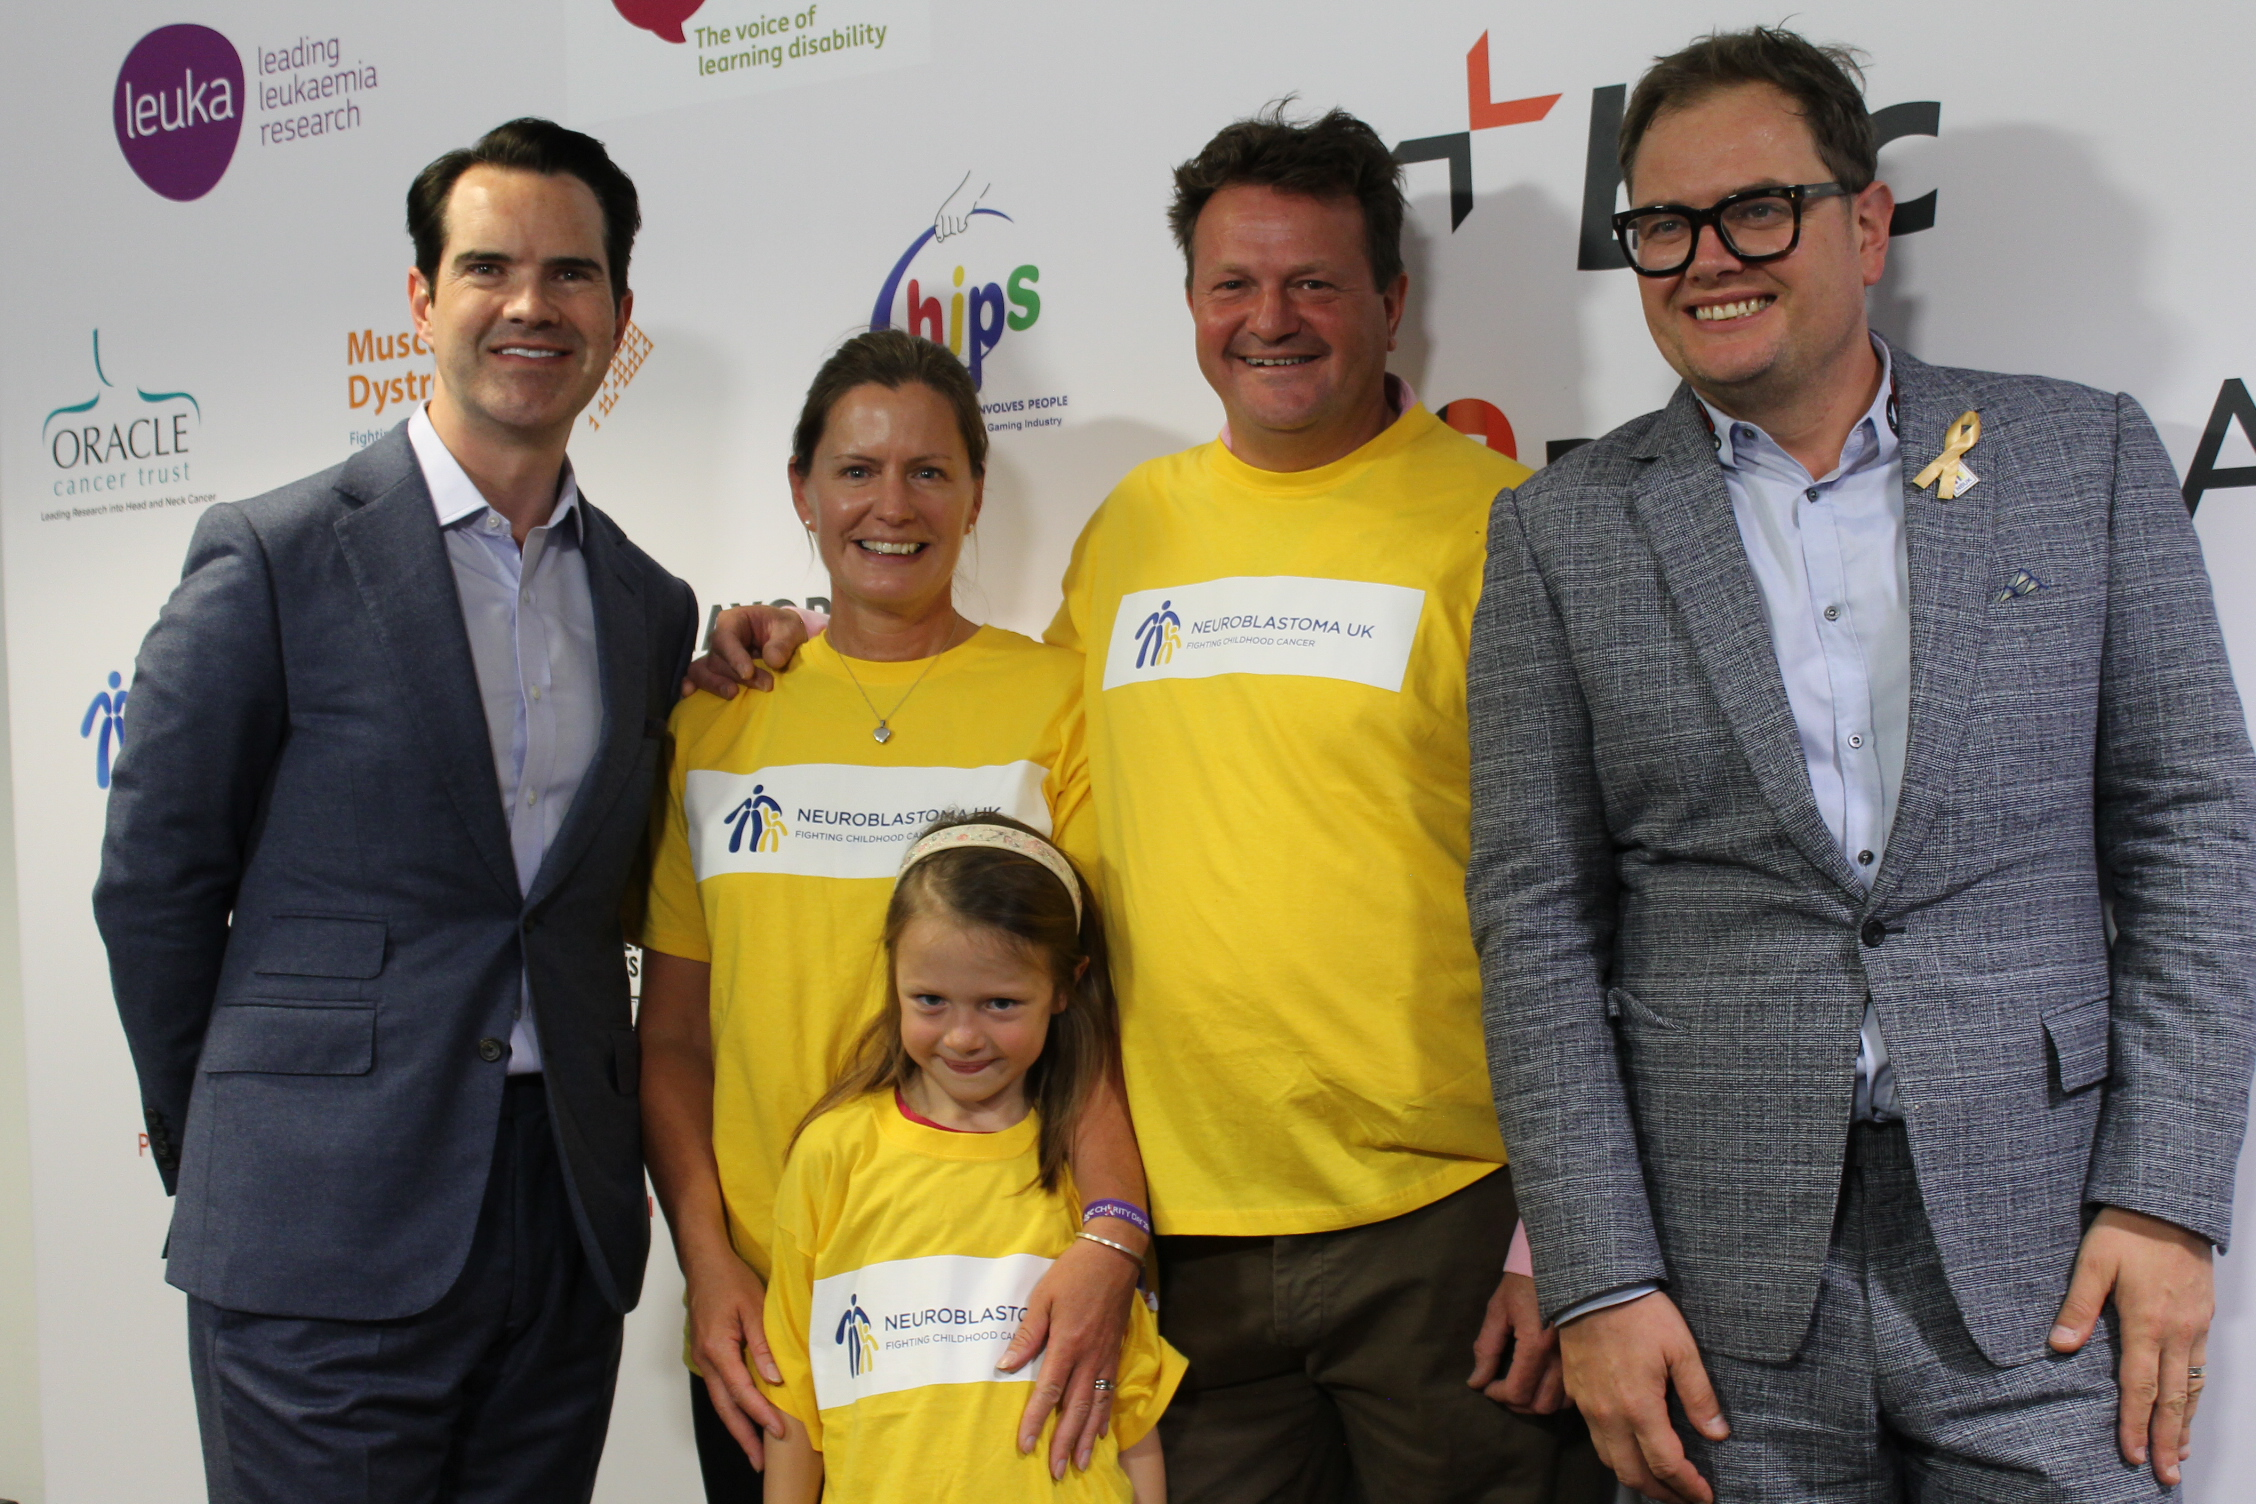 The Jackson family with Alan Carr and Jimmy Carr